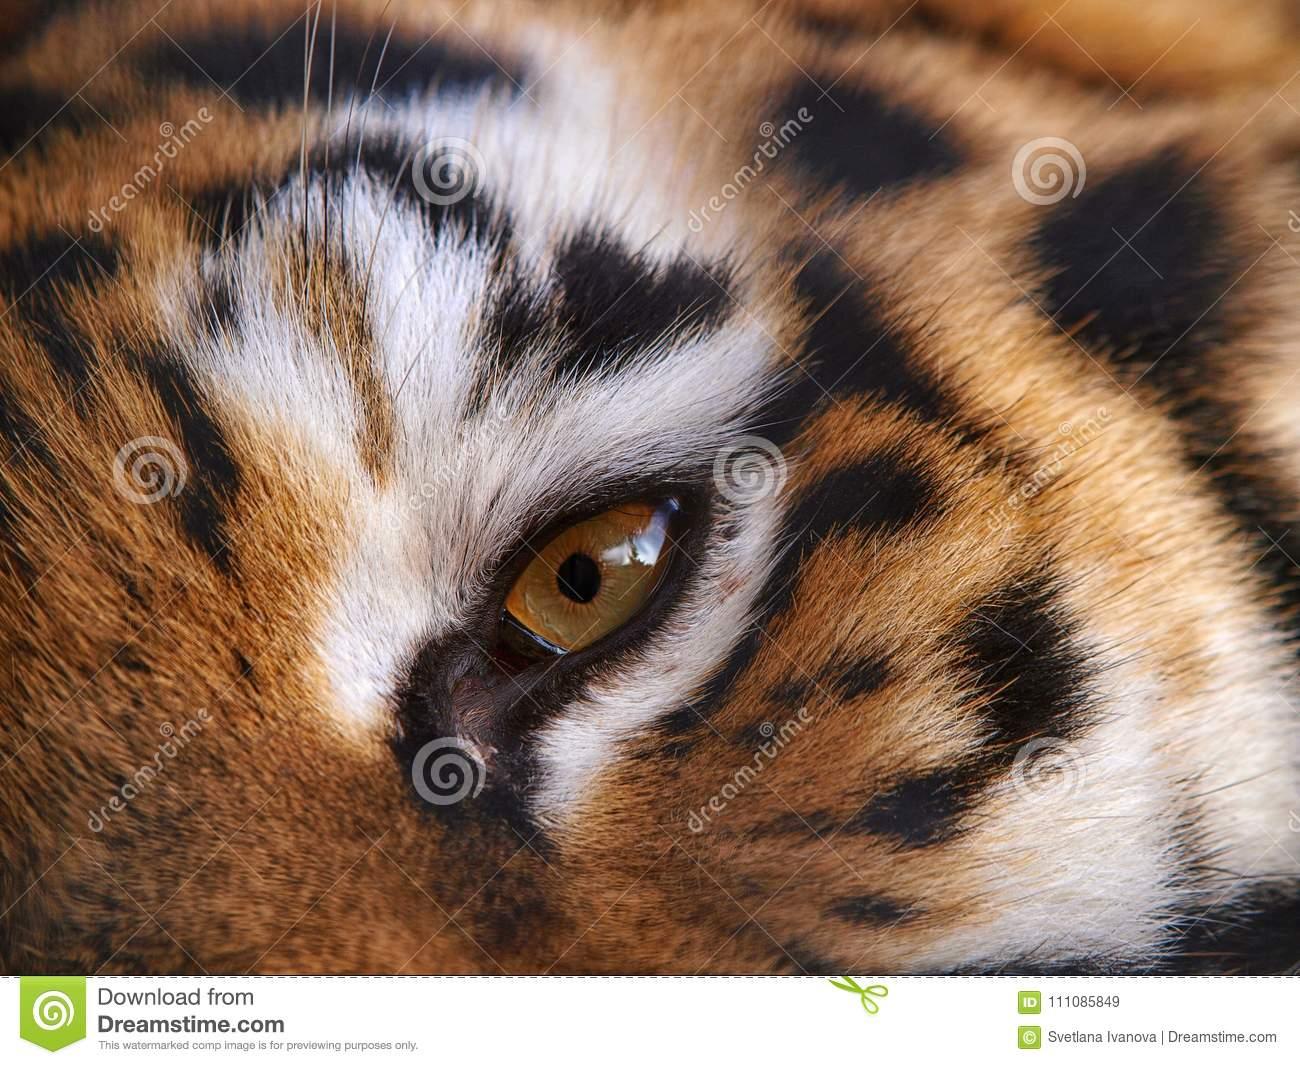 Eye of the fierce tiger